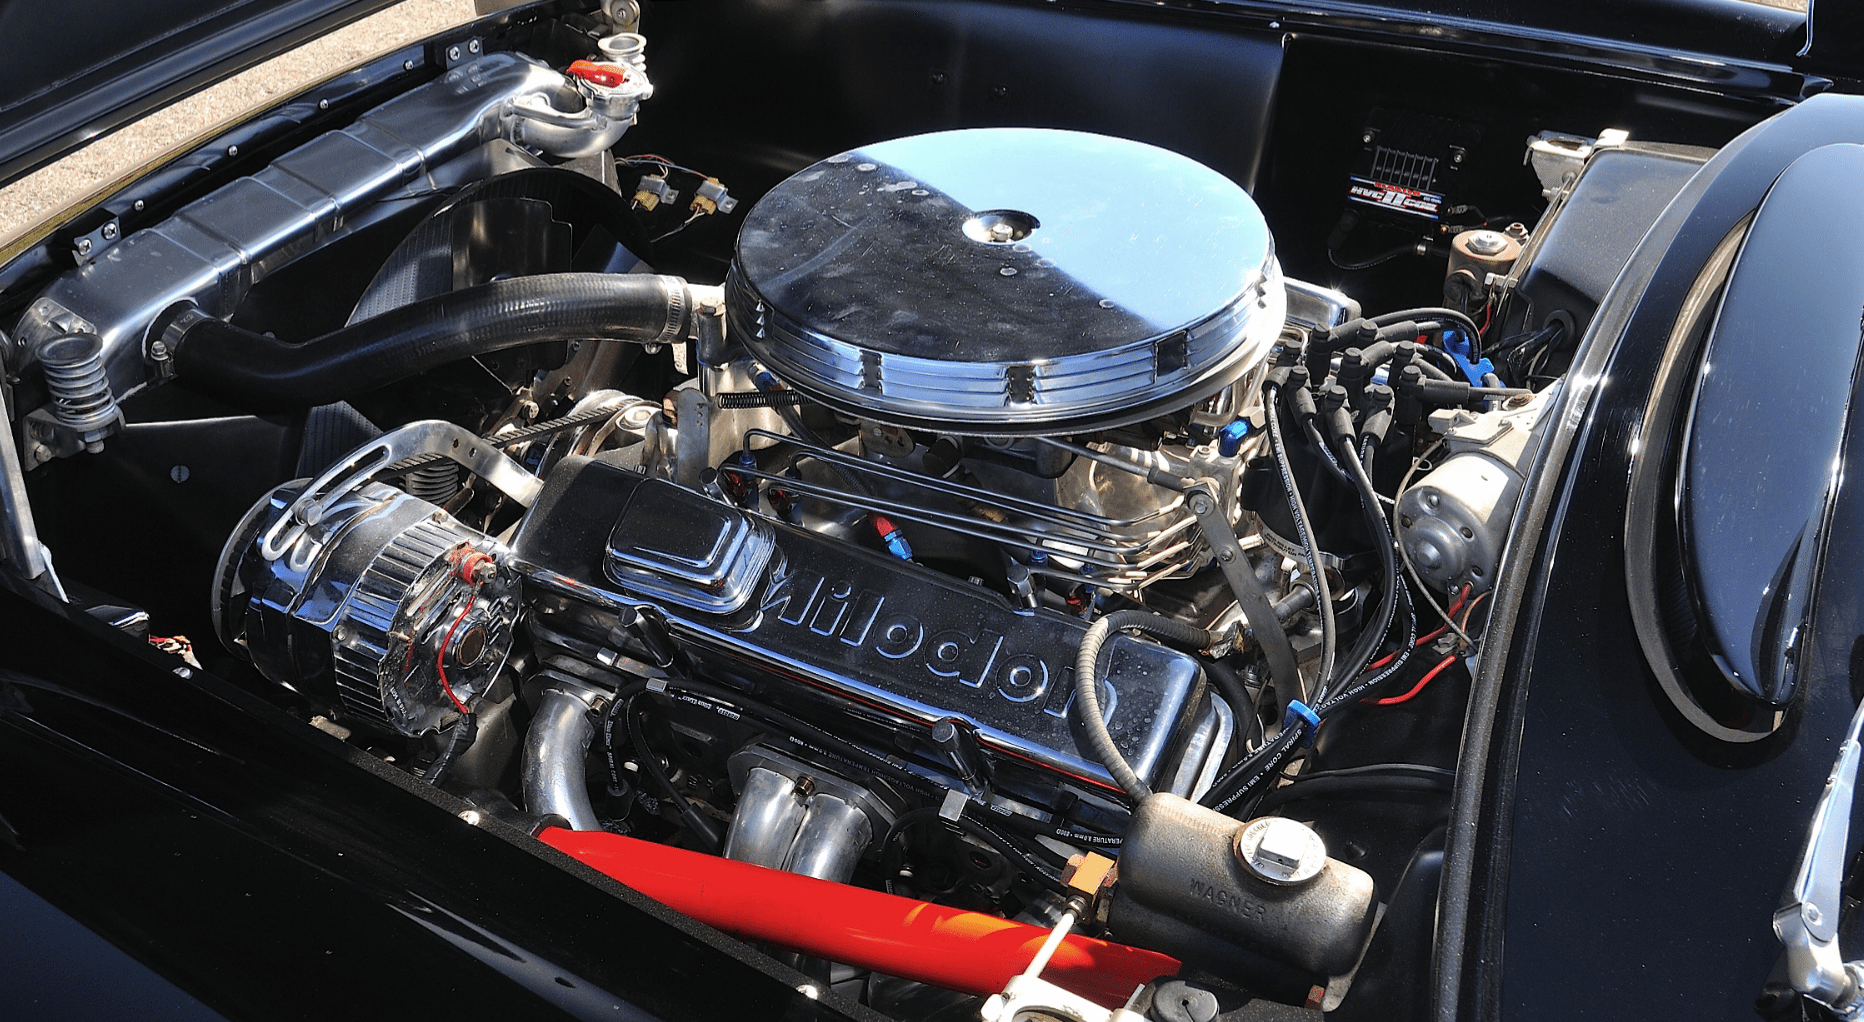 1956 C1 Corvette Engine